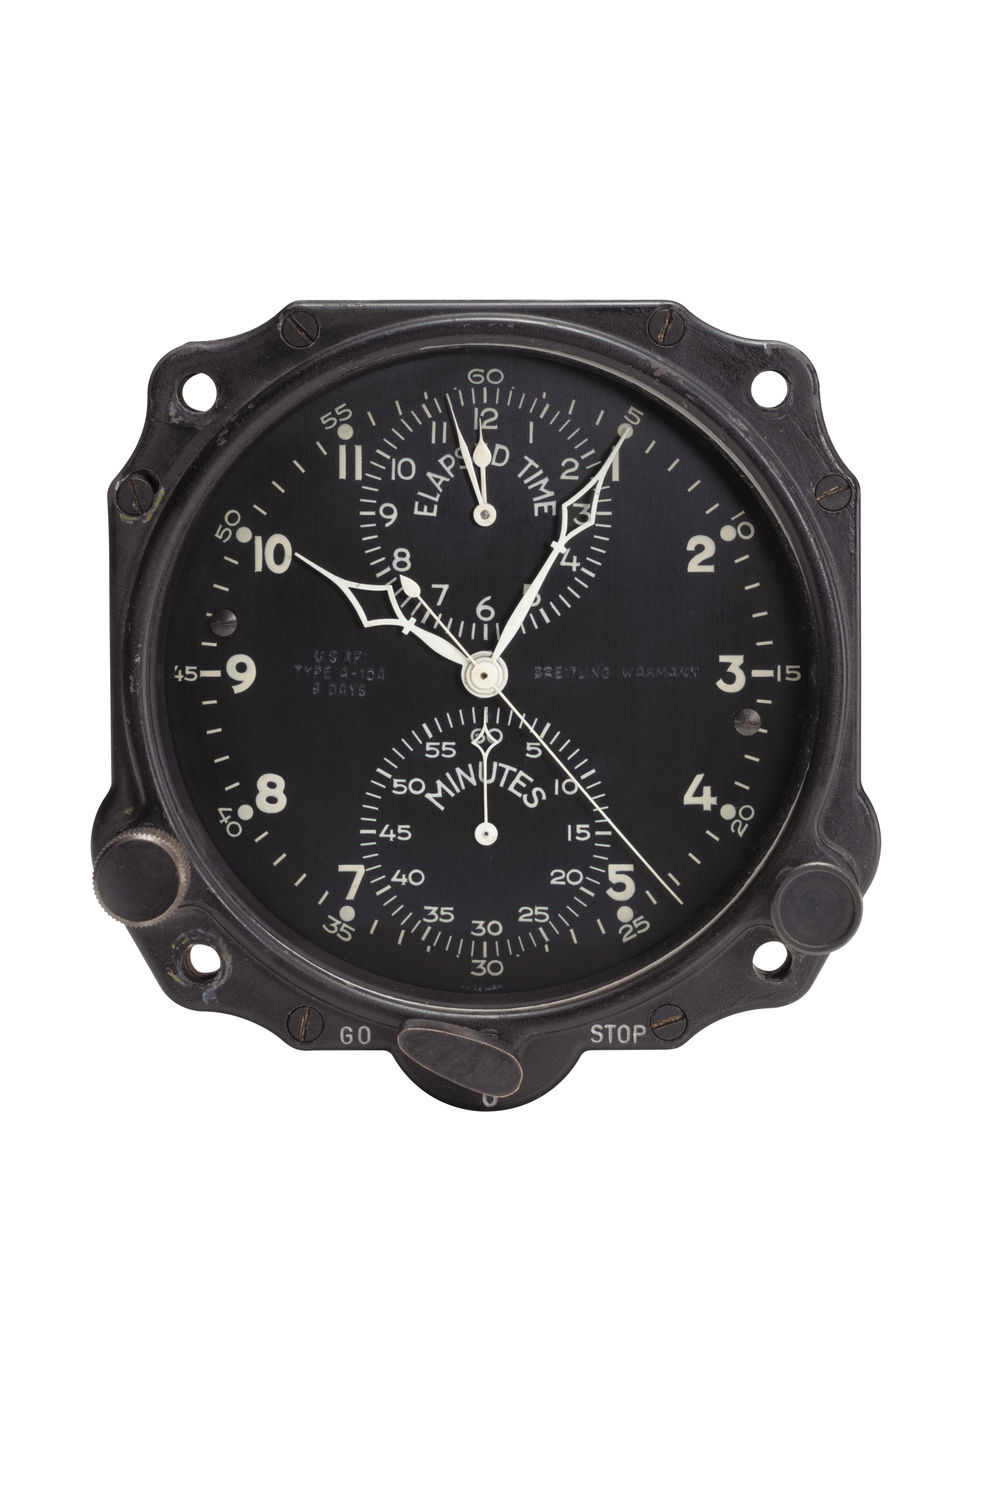 One of the on-board clocks made by the Huit Aviation Department of Breitling